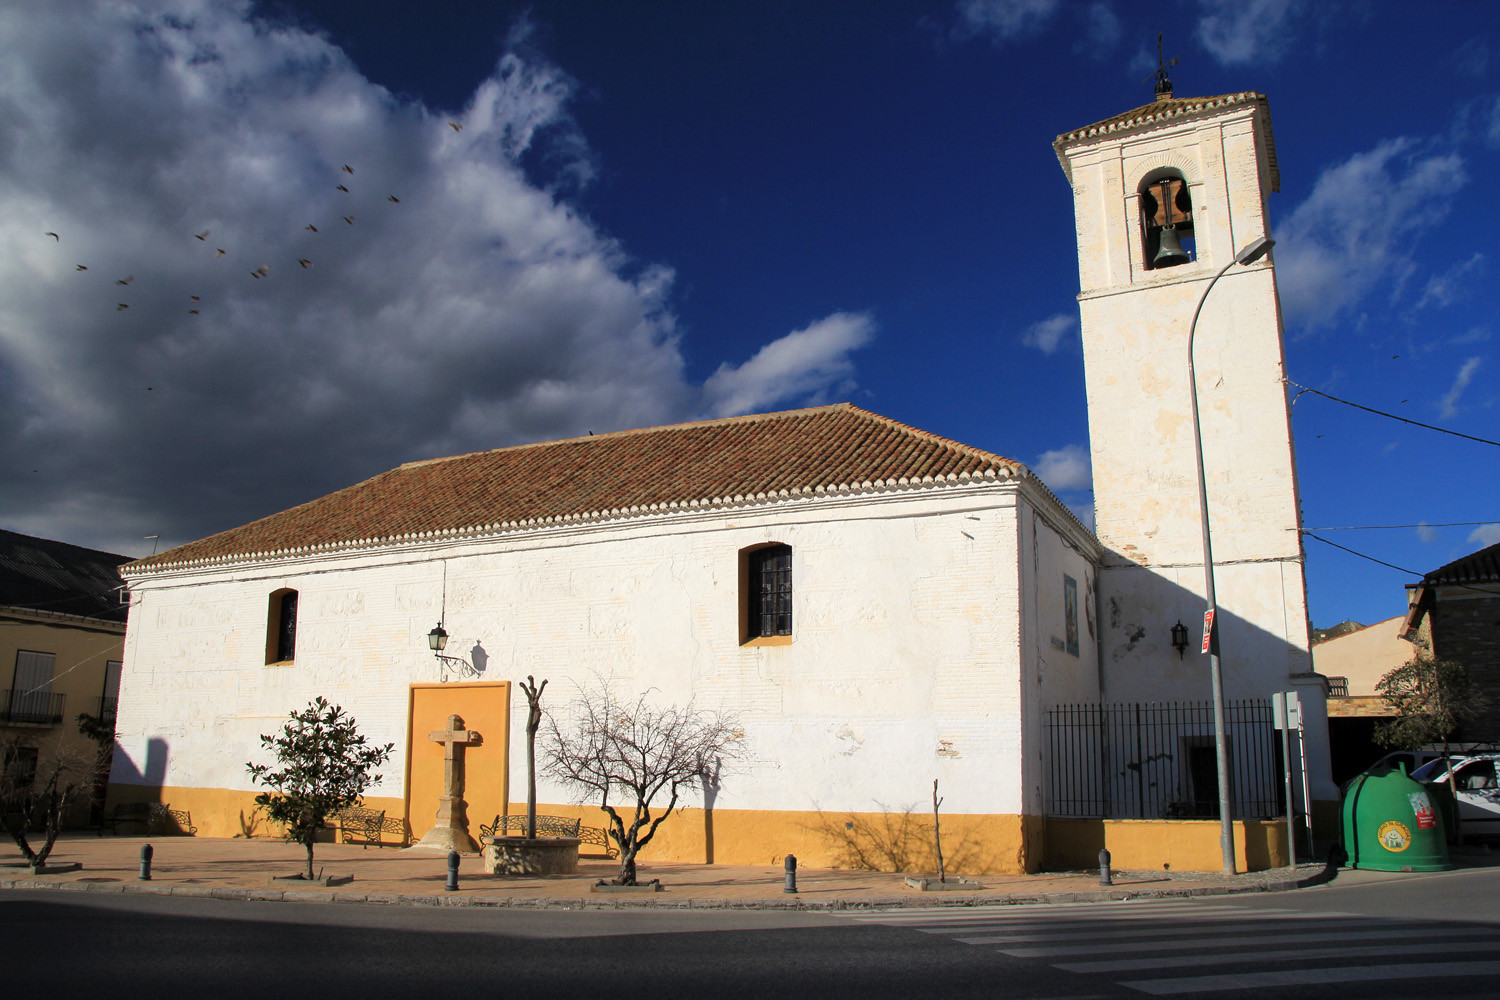 The Church of La Malaha